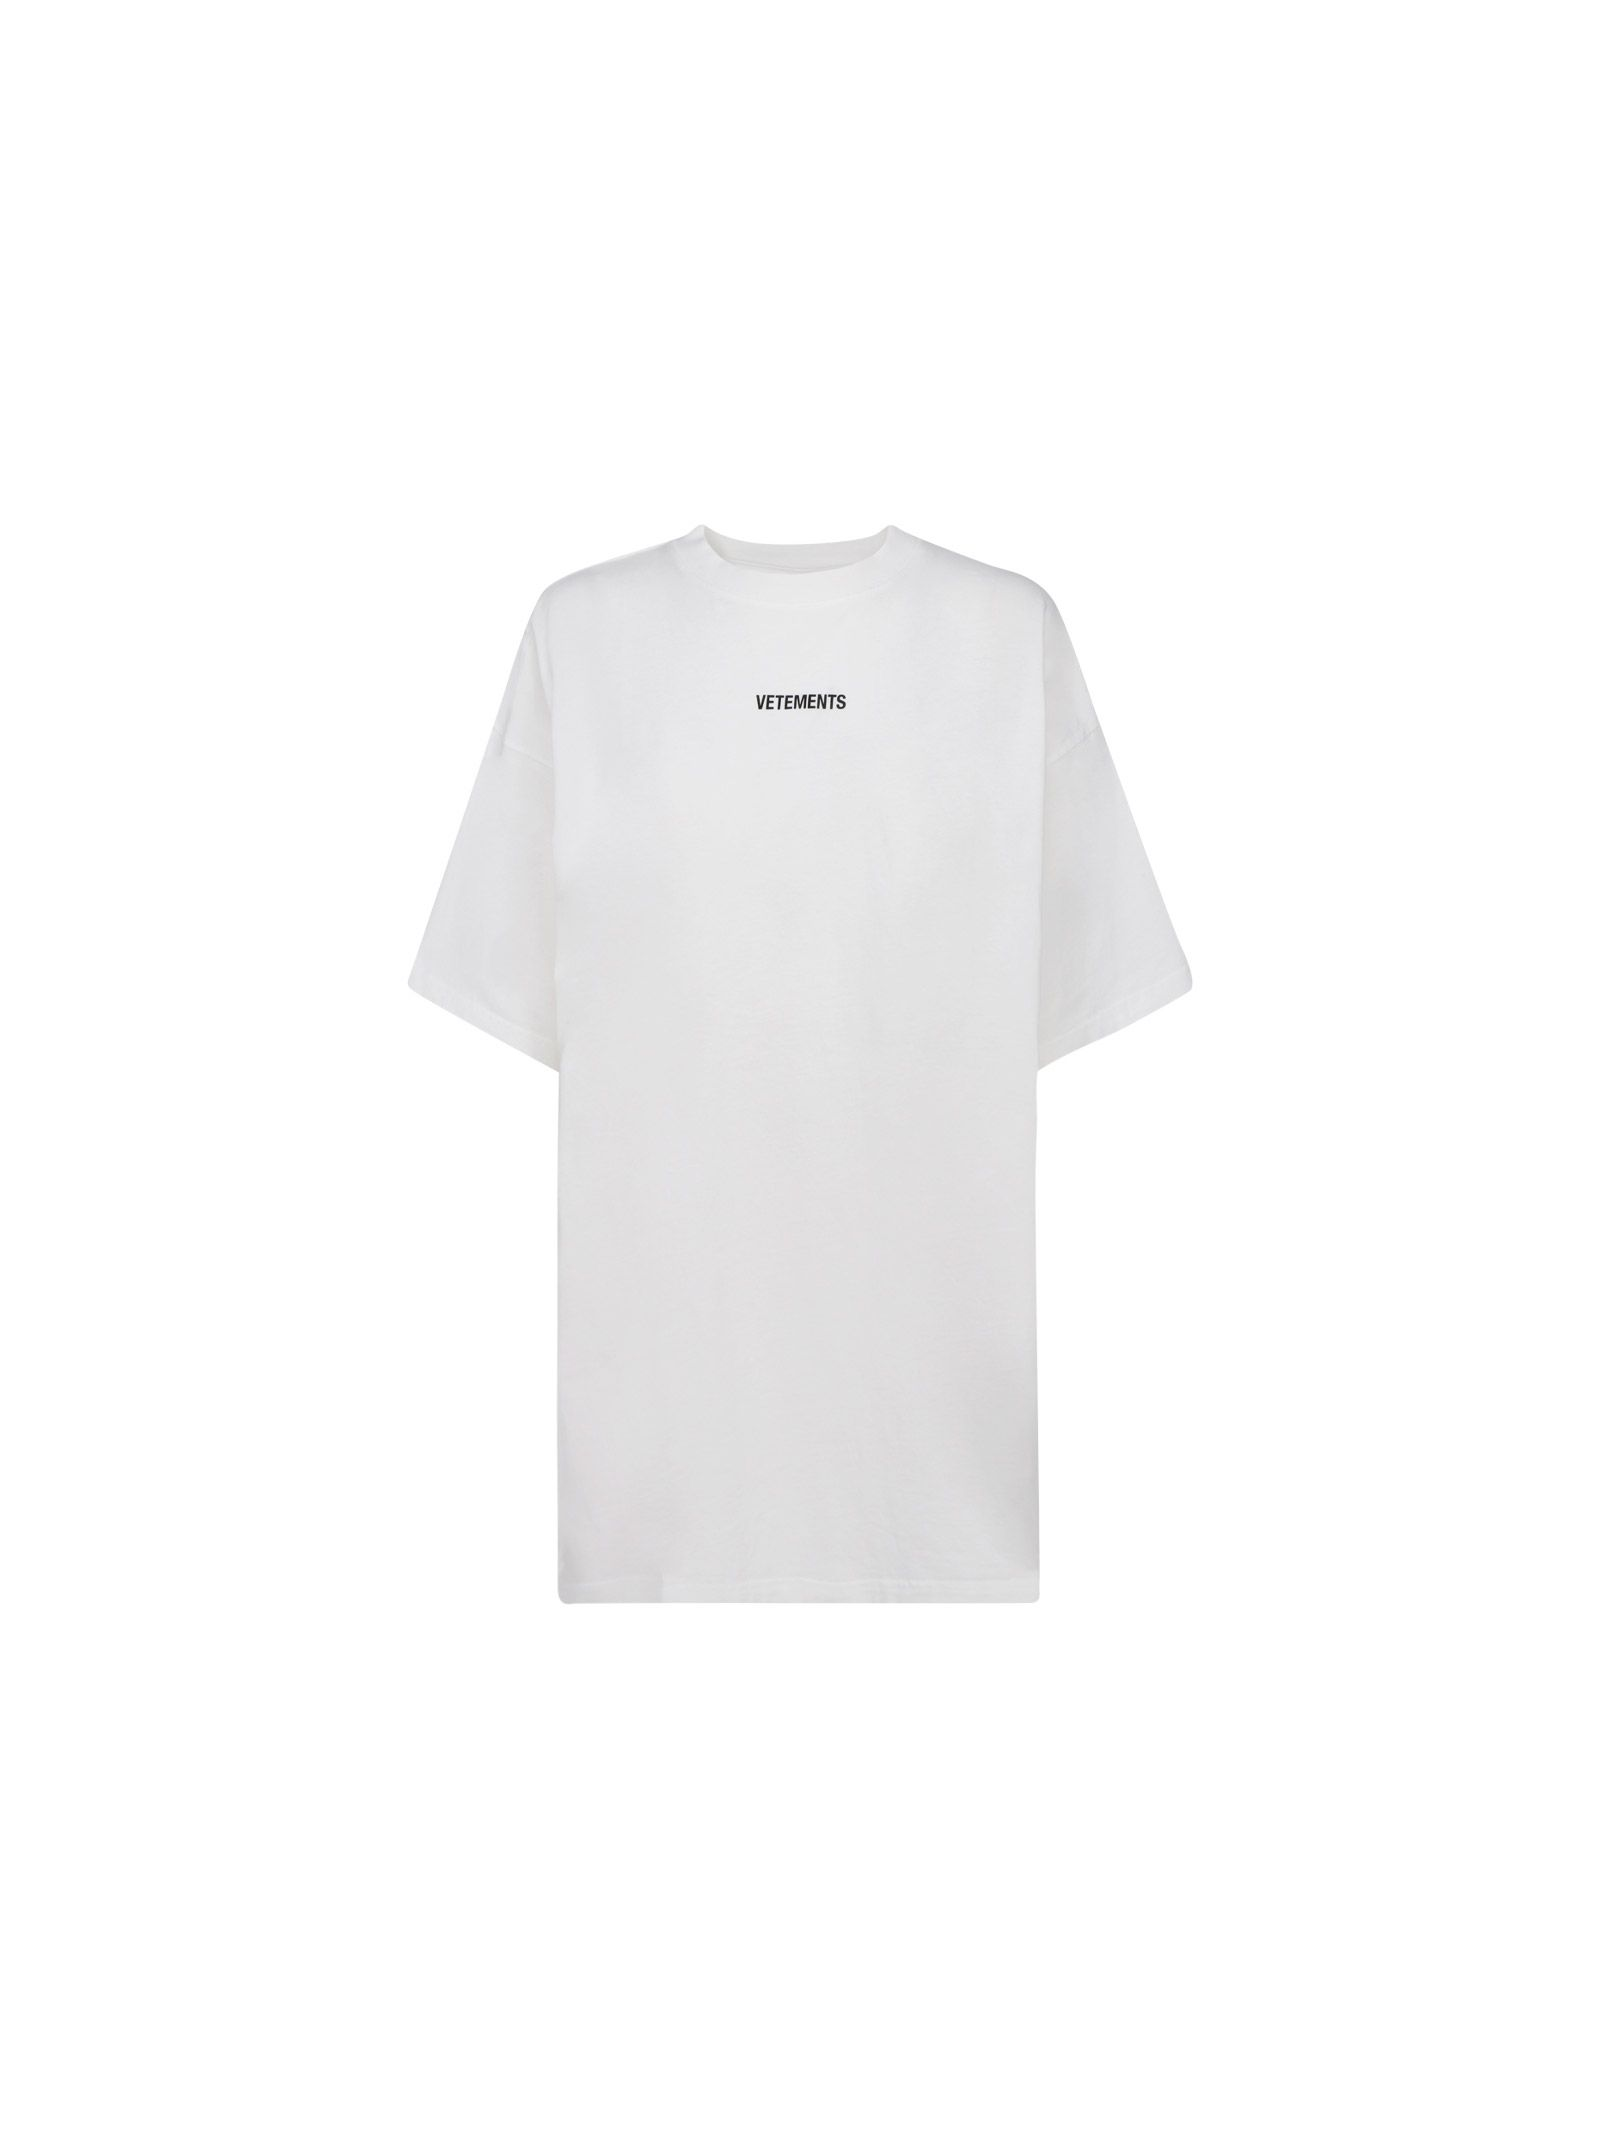 VETEMENTS VETEMENTS WOMEN'S WHITE COTTON T-SHIRT